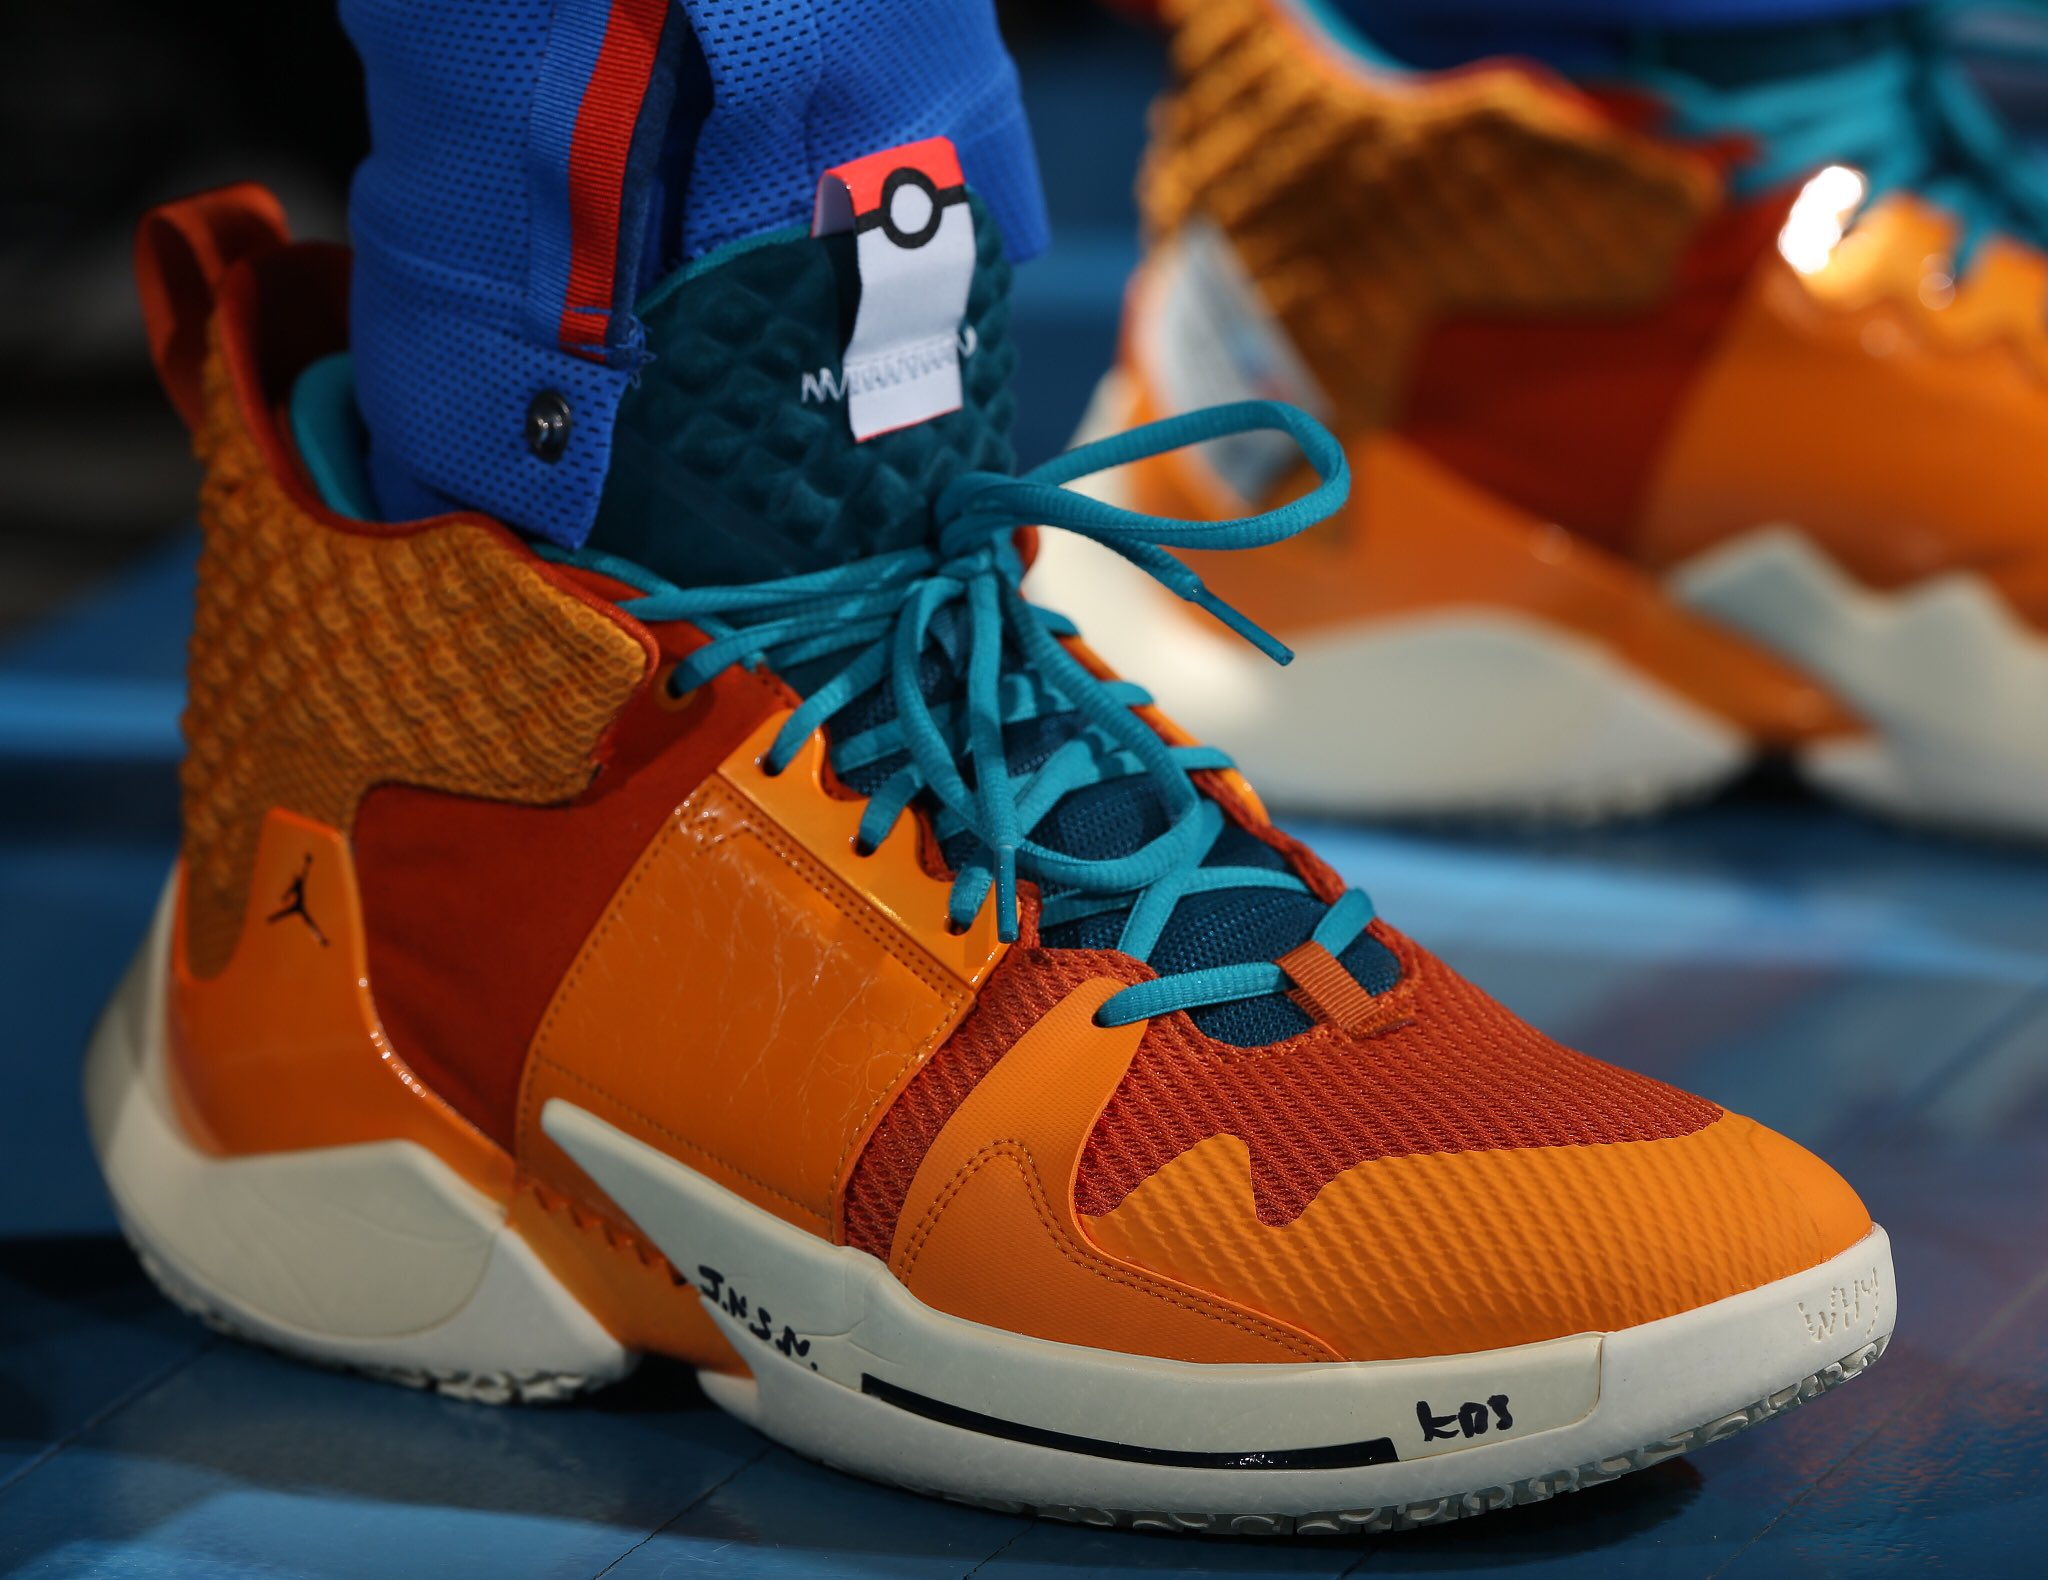 Russell Westbrook drops a triple double in the Pokemon Charizard Jordan Why Not? Zer0.2 - Oklahoma City Thunder vs. Dallas Mavericks | March 31, 201925 Points11 Assists11 Rebounds2 Steals9-19 Shooting